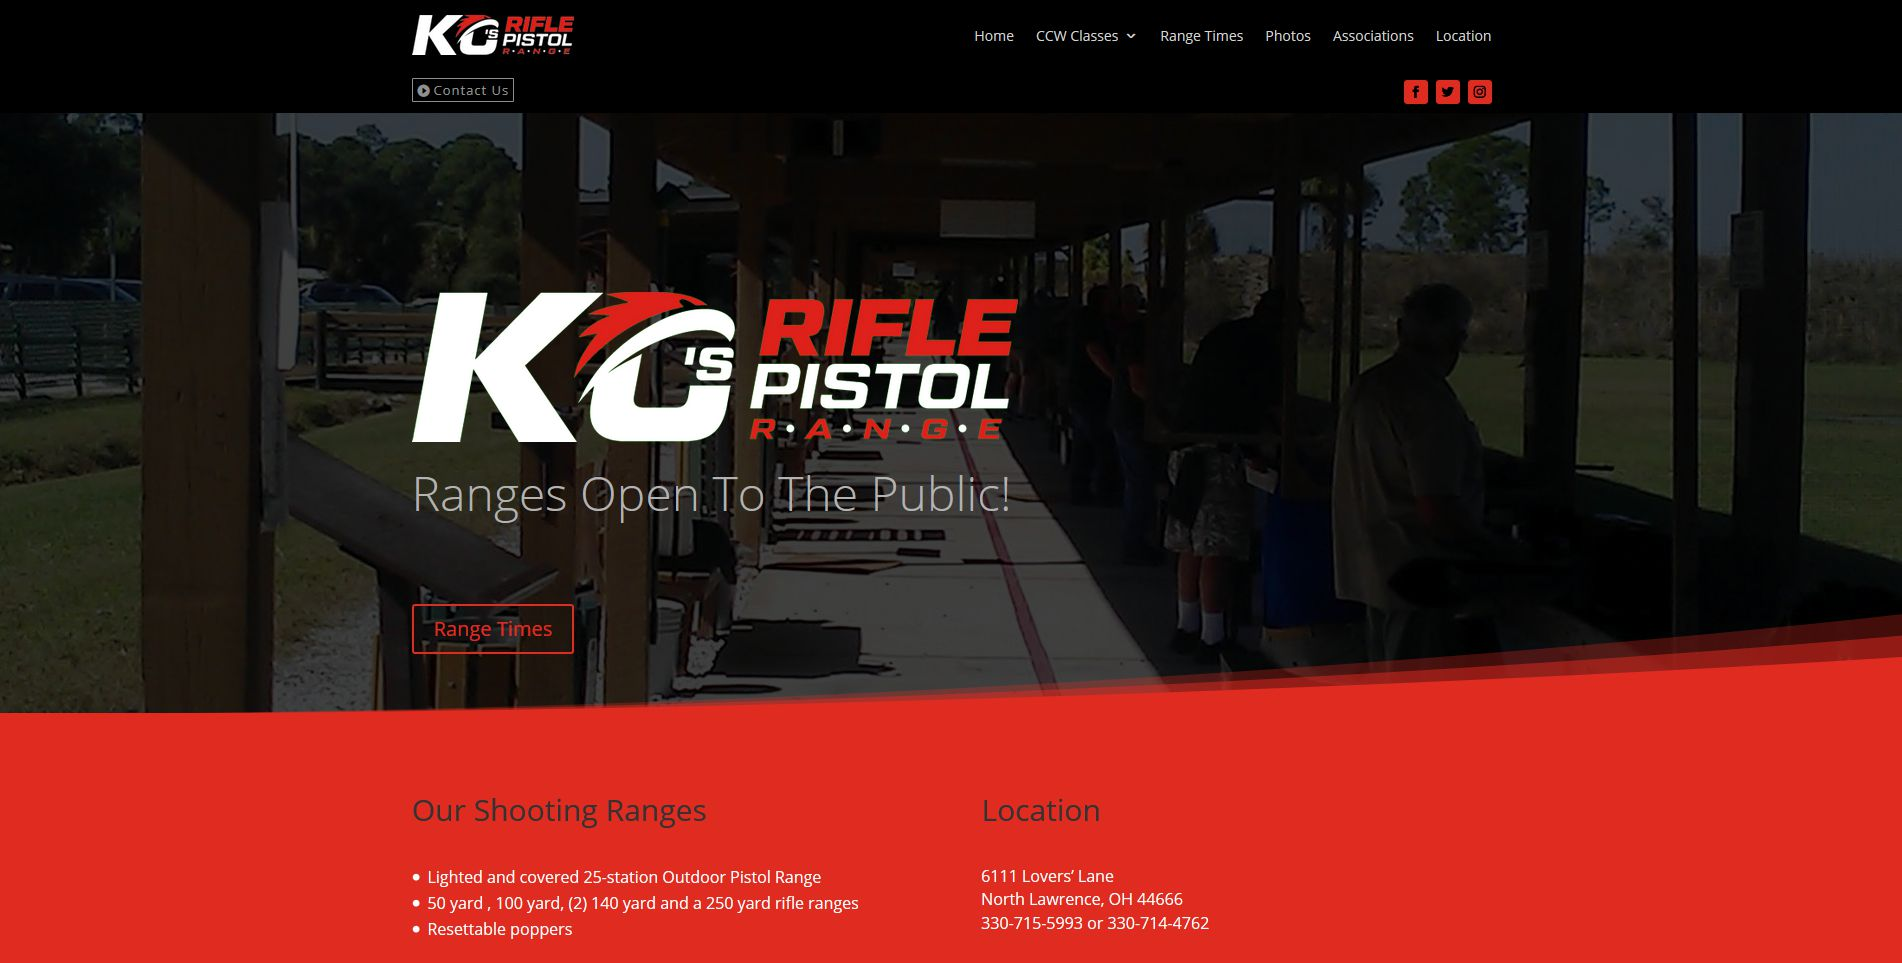 Home page of the KC Rifle Pistol Range website